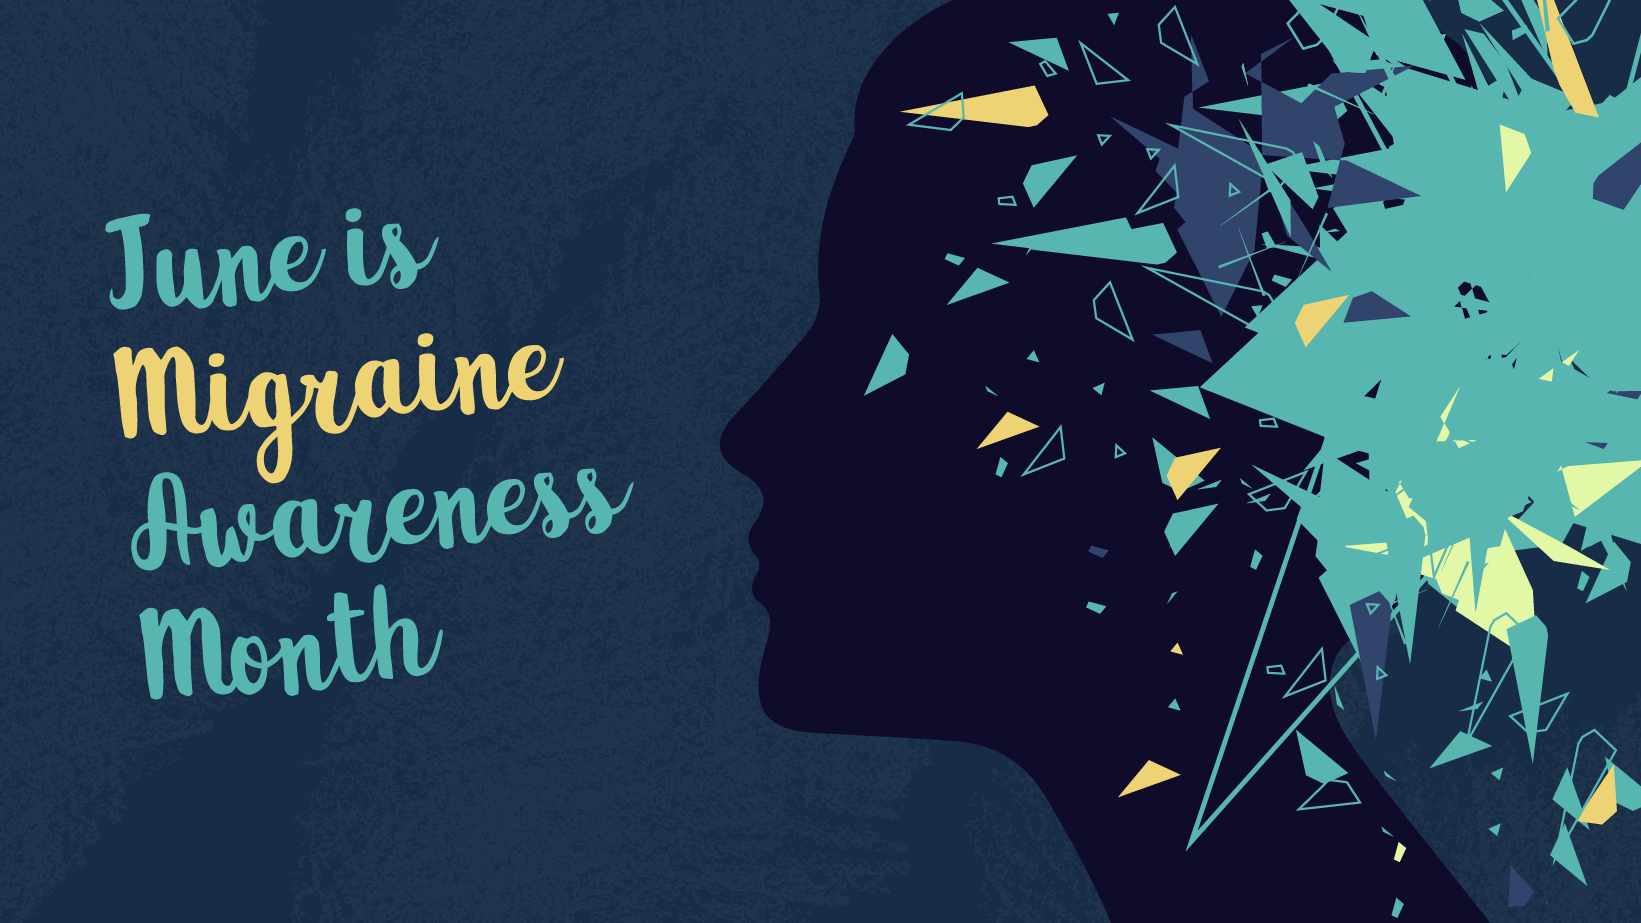 Awareness Month facebook cover